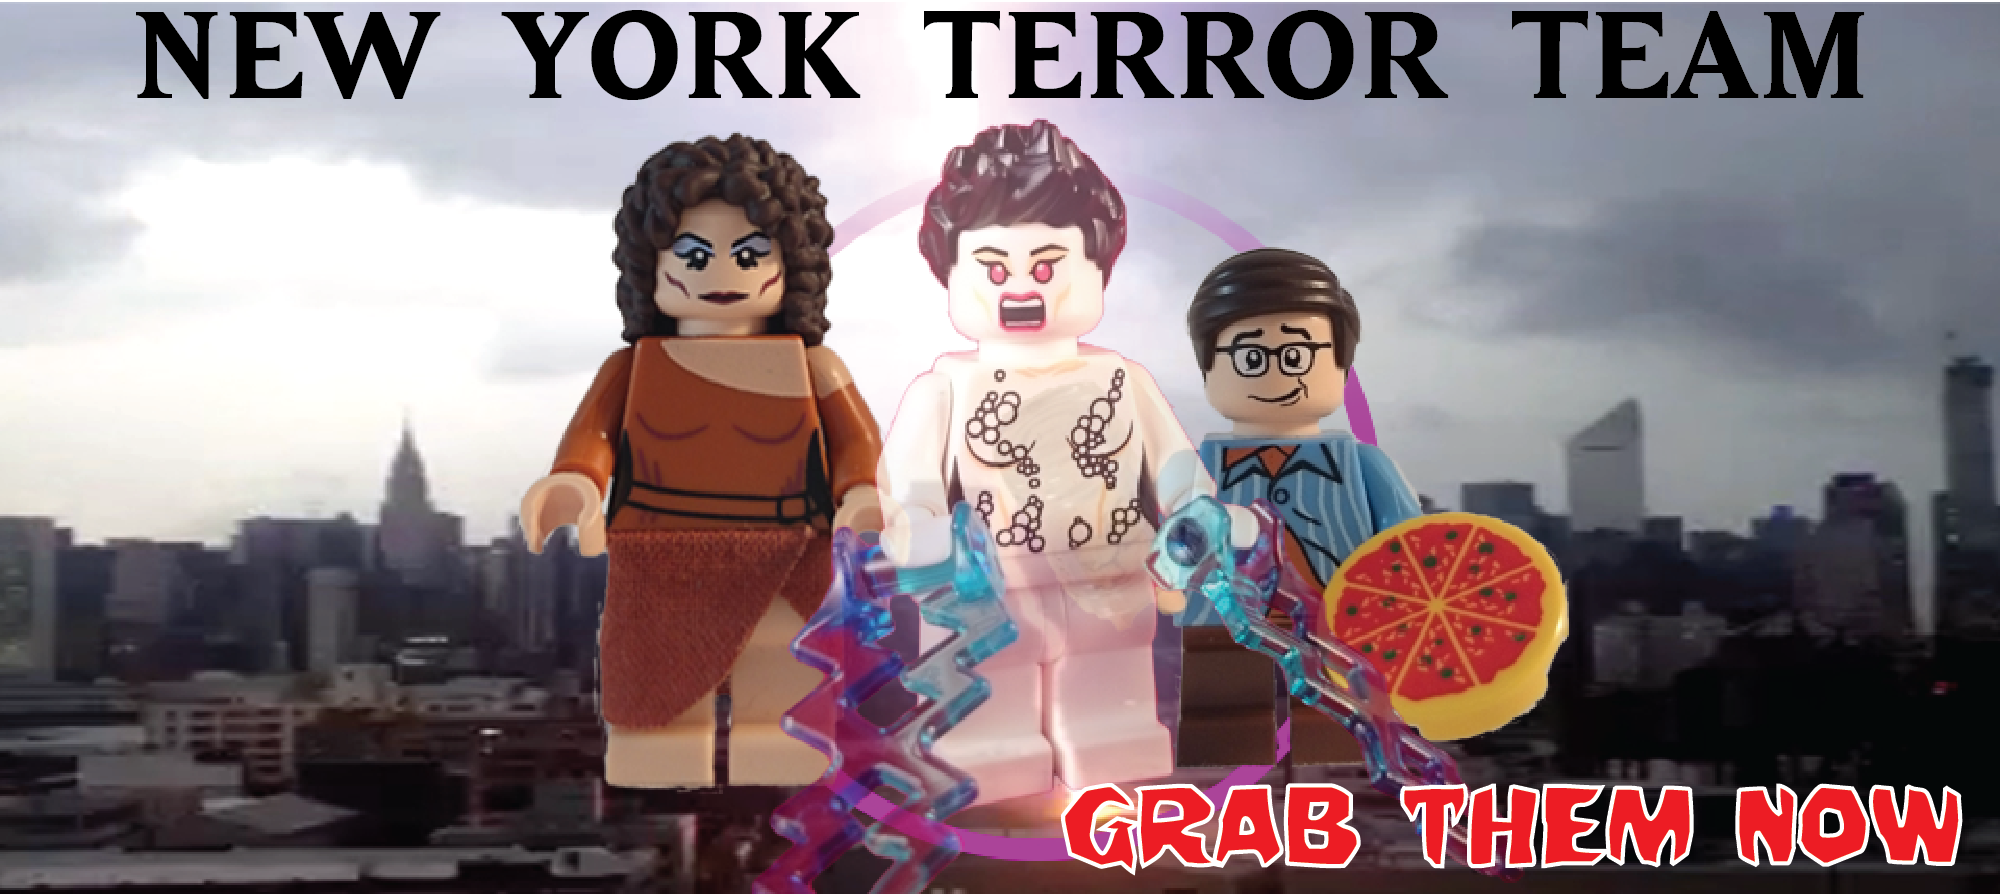 New York Terror Team